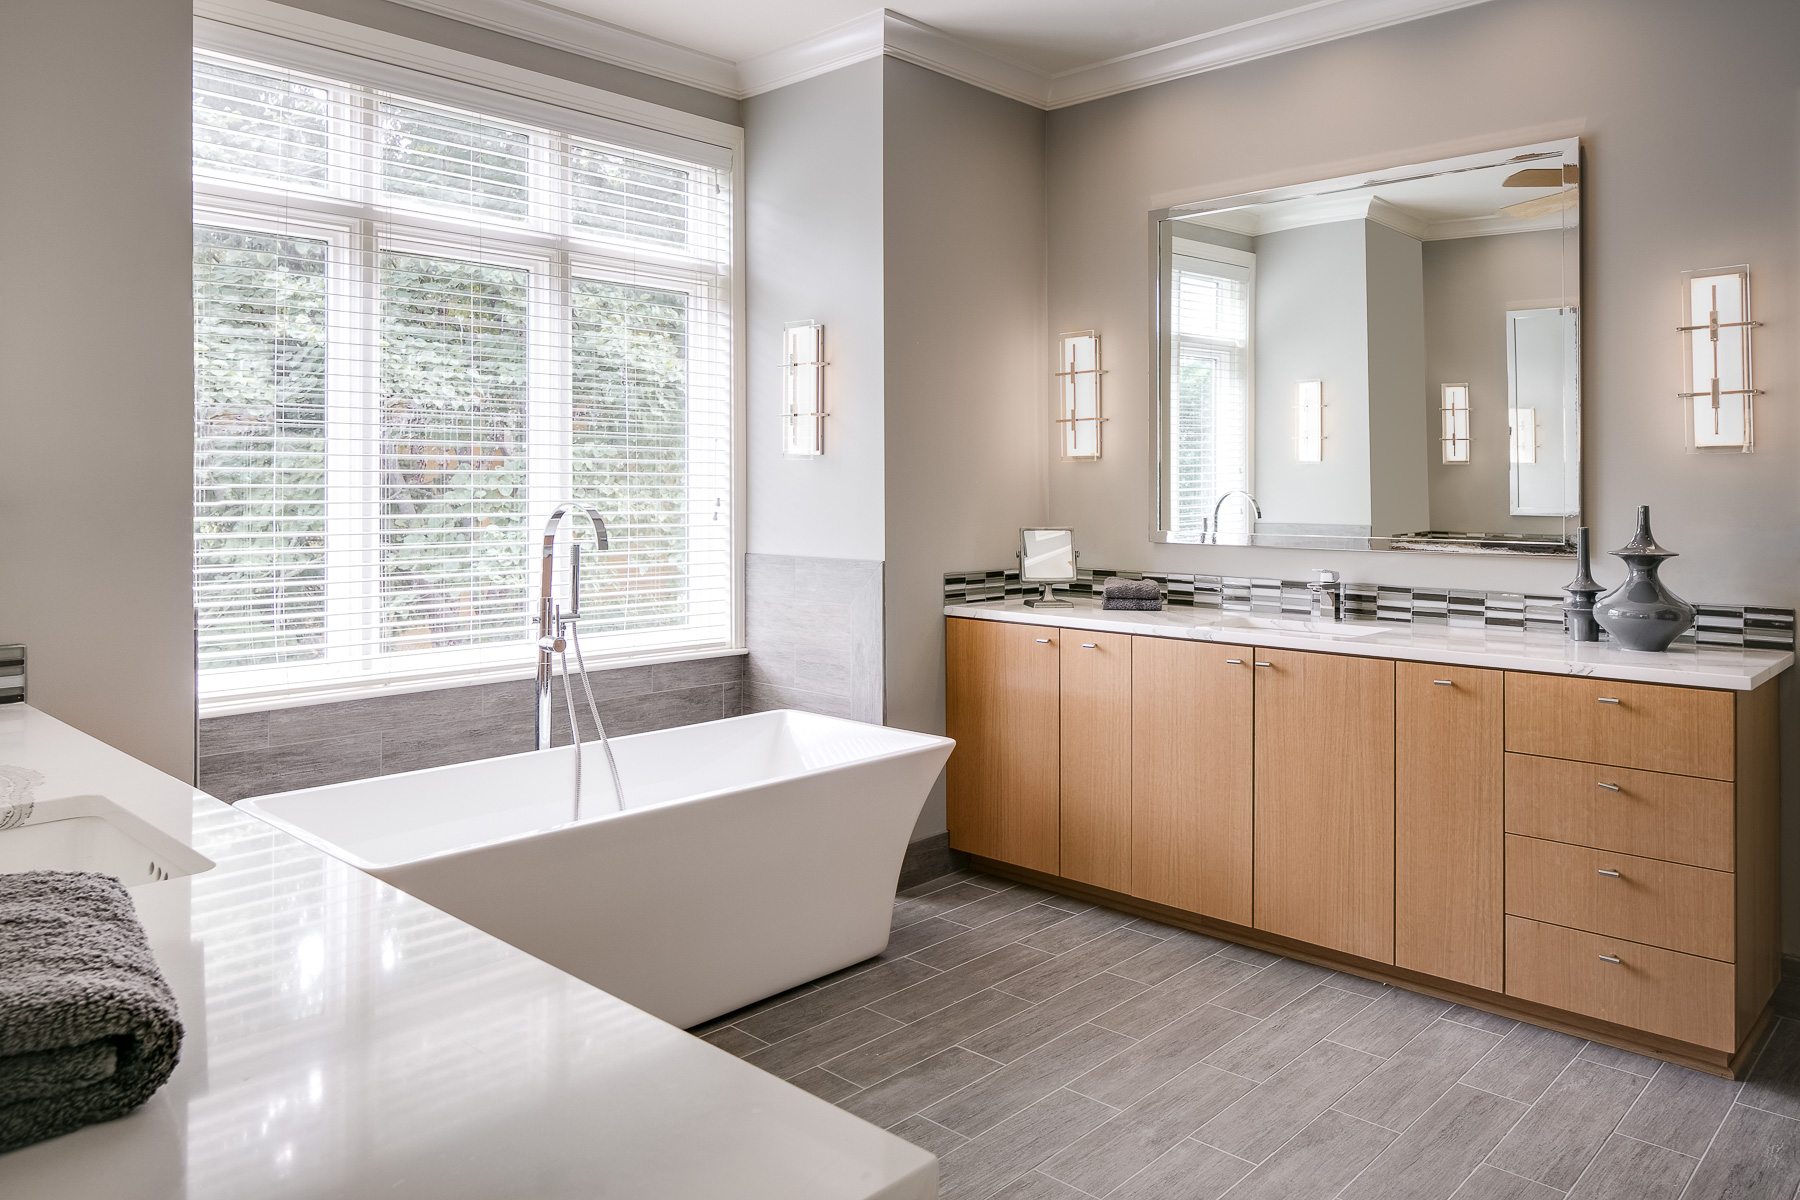 Master Bathroom Bliss: A Design Connection, Inc. Featured Project